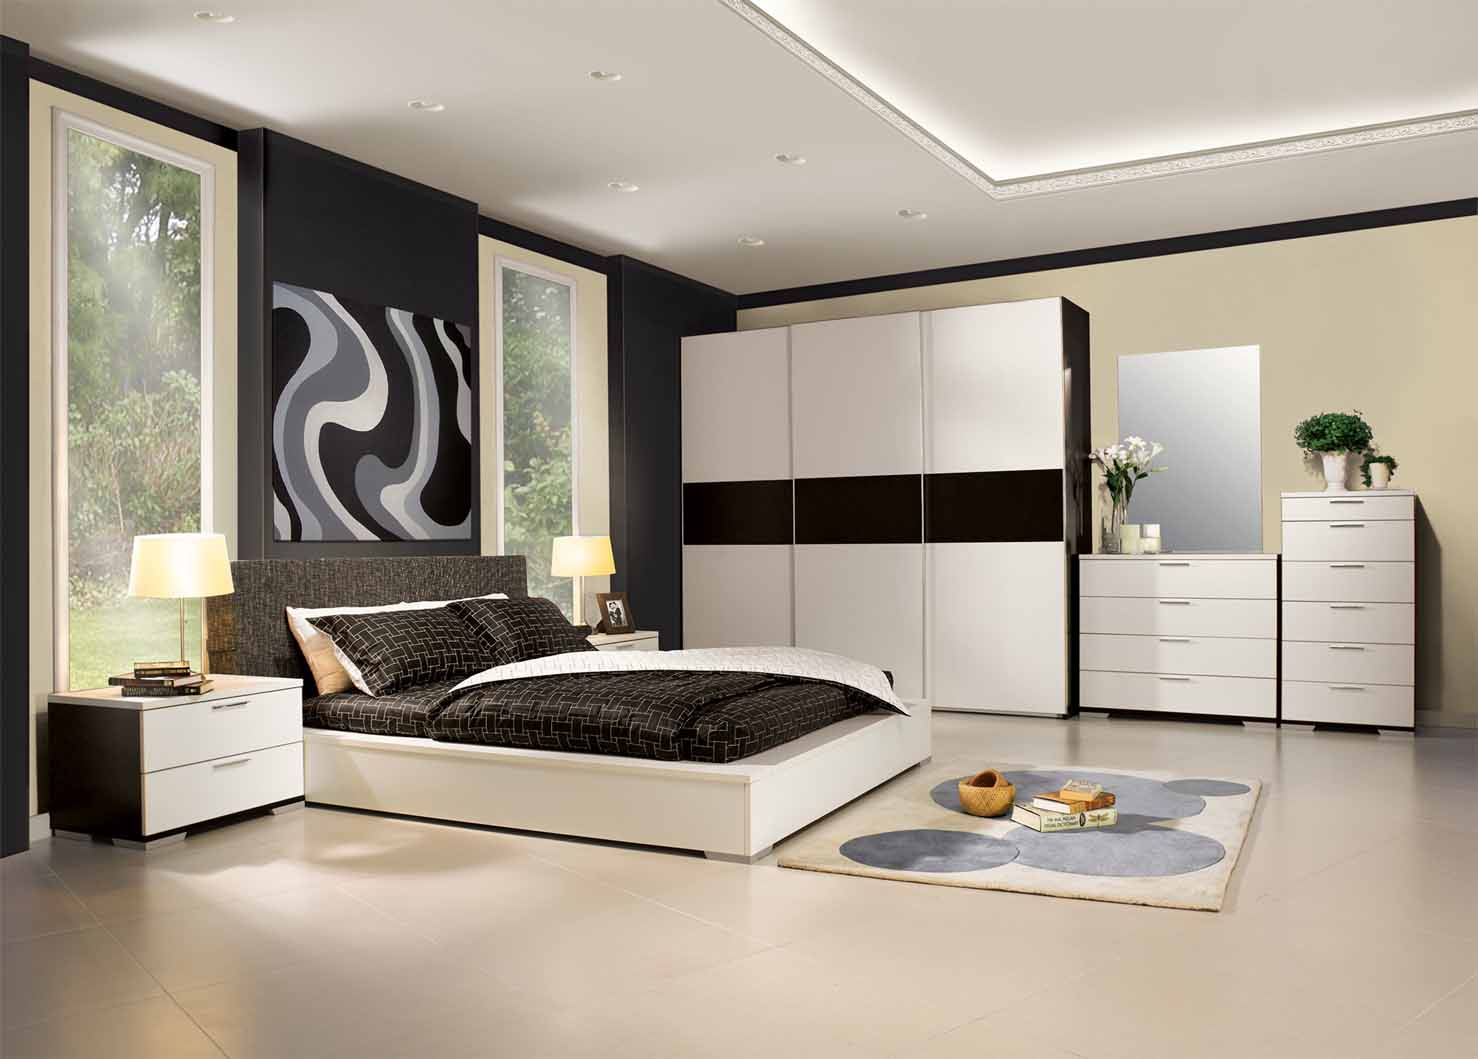 Modern black bedroom furniture popular interior house ideas for Modern home interior furniture designs ideas